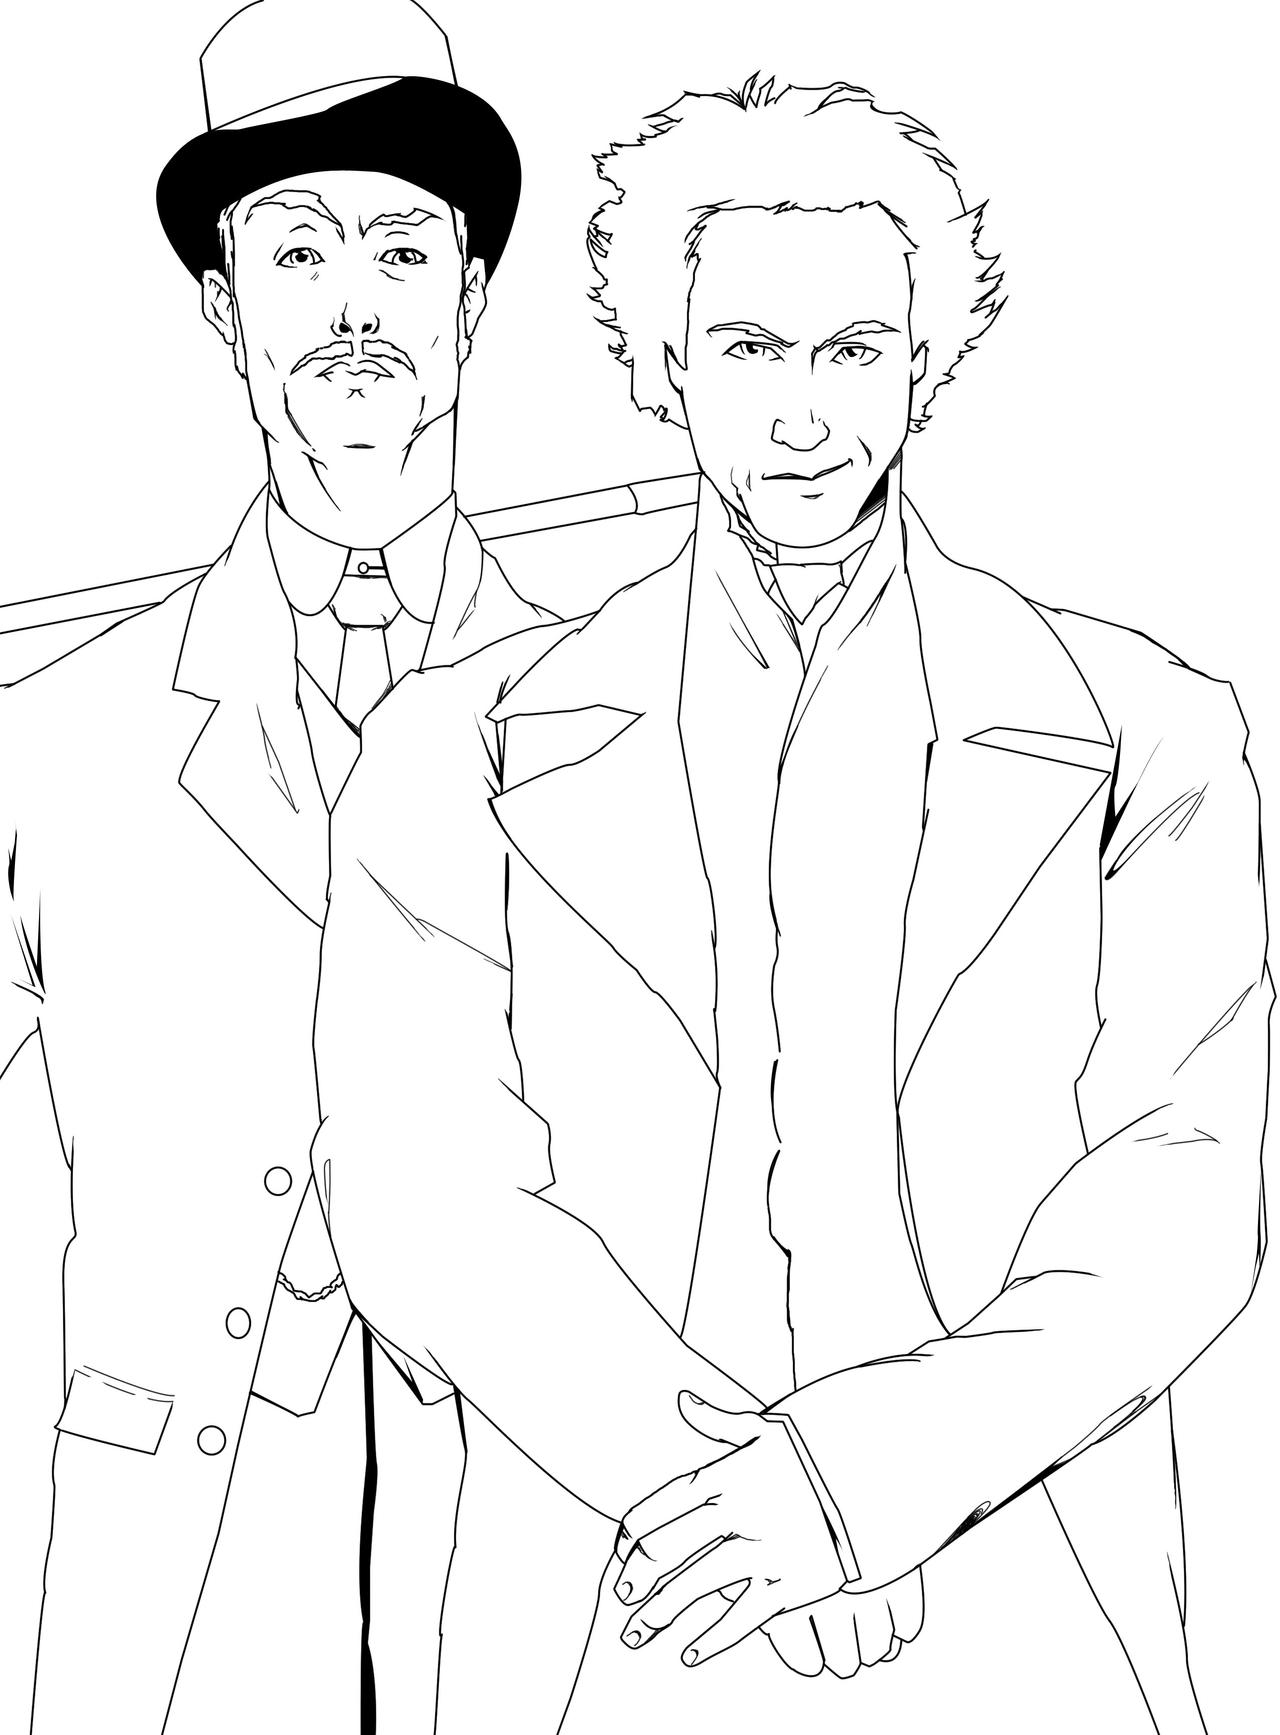 sherlock 2010 coloring pages - photo#6